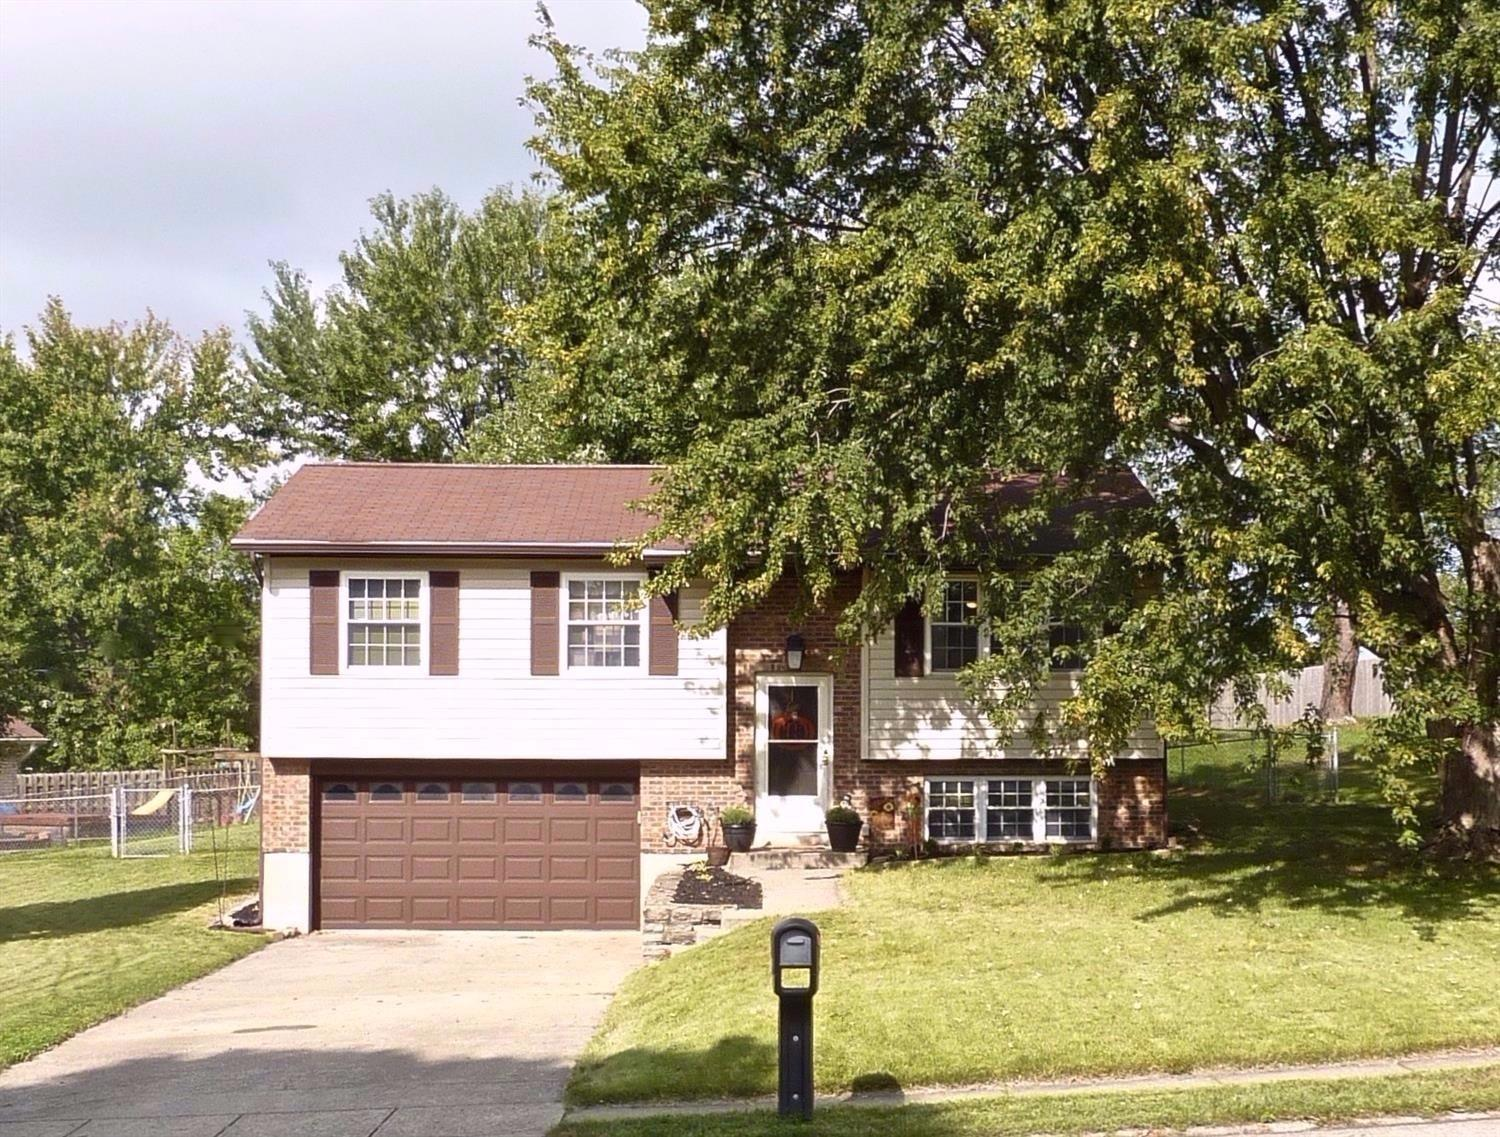 Photo 1 for 715 Lakeshore Dr Villa Hills, KY 41017